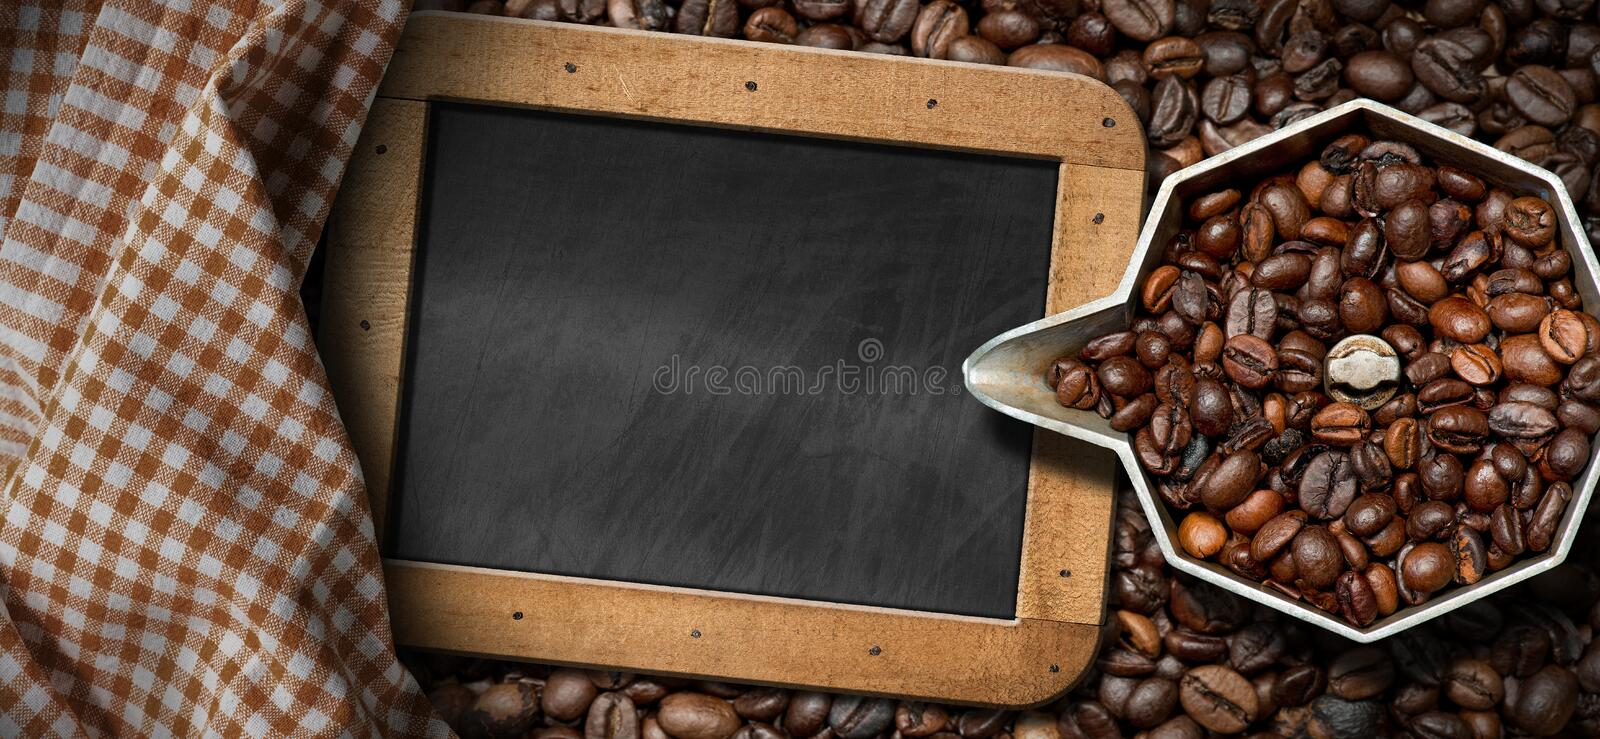 Italian Coffee Maker with Coffee Beans. Old italian coffee maker moka pot - top view with roasted coffee beans and an empty blackboard with copy space royalty free stock images